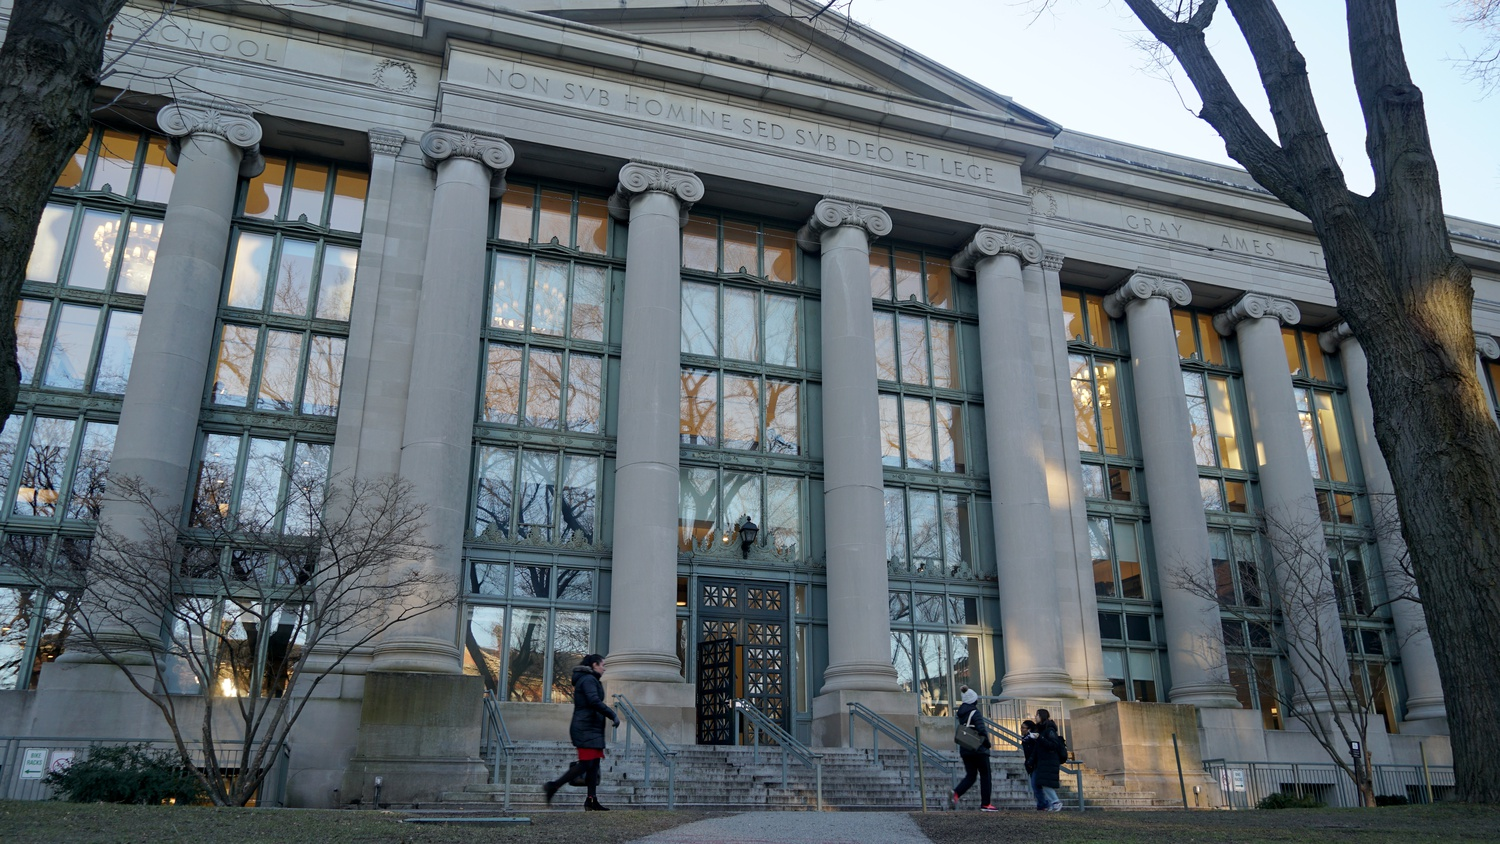 Harvard Law School Dean John F. Manning '82 joined deans from 20 law schools across the country in a letter to the New York Court of Appeals advocating for measures to allow more students to take the New York bar exam while respecting public health concerns.